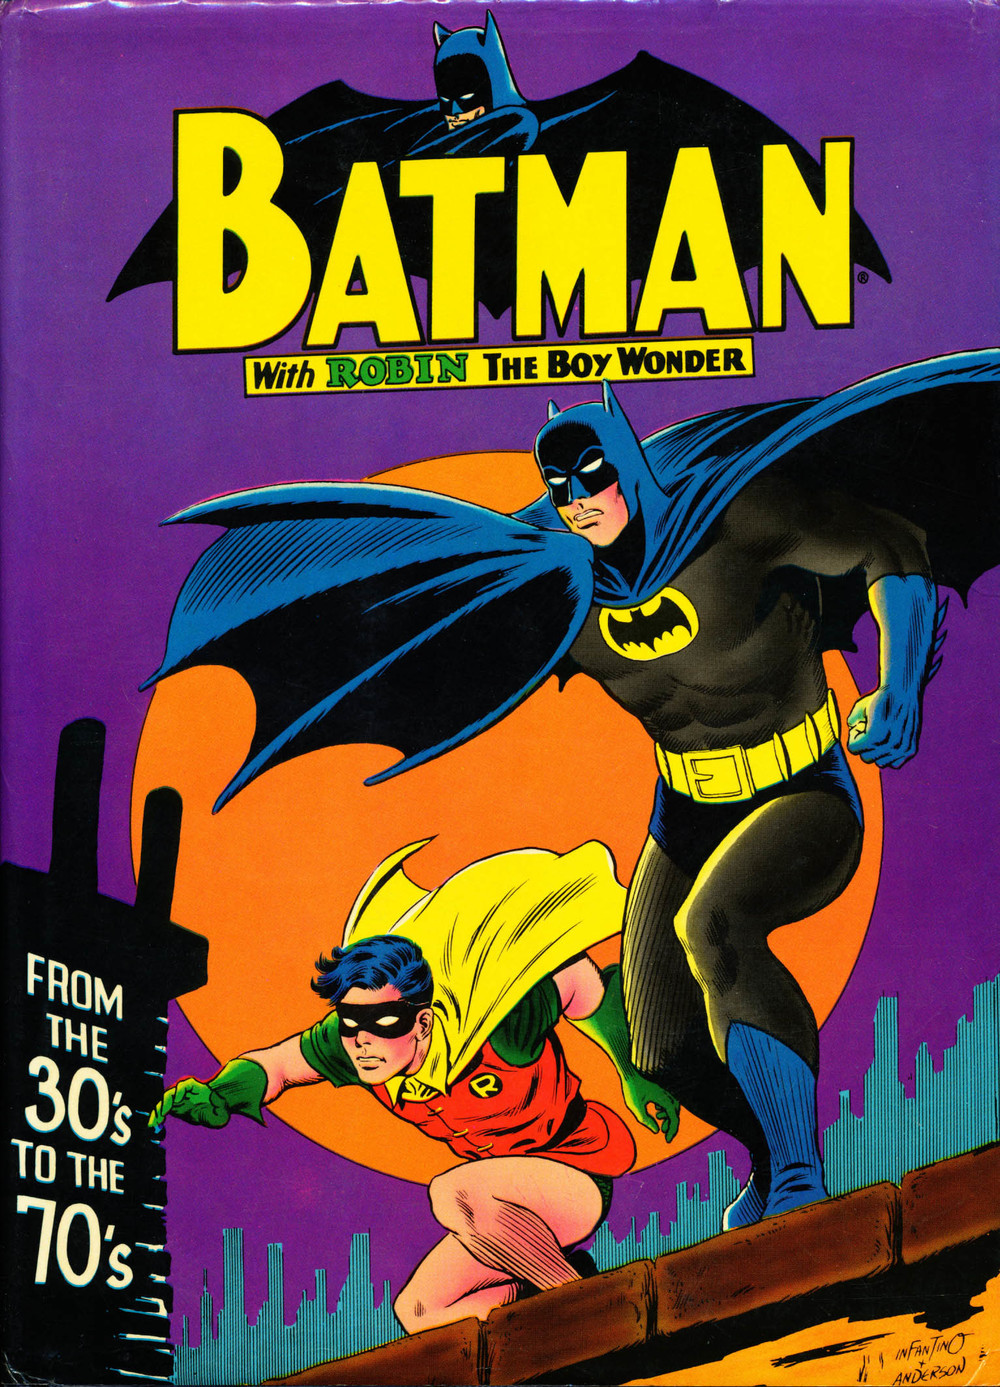 The pleasure I found inBatman From the 30s to the 70swas real, but so was the sadness.